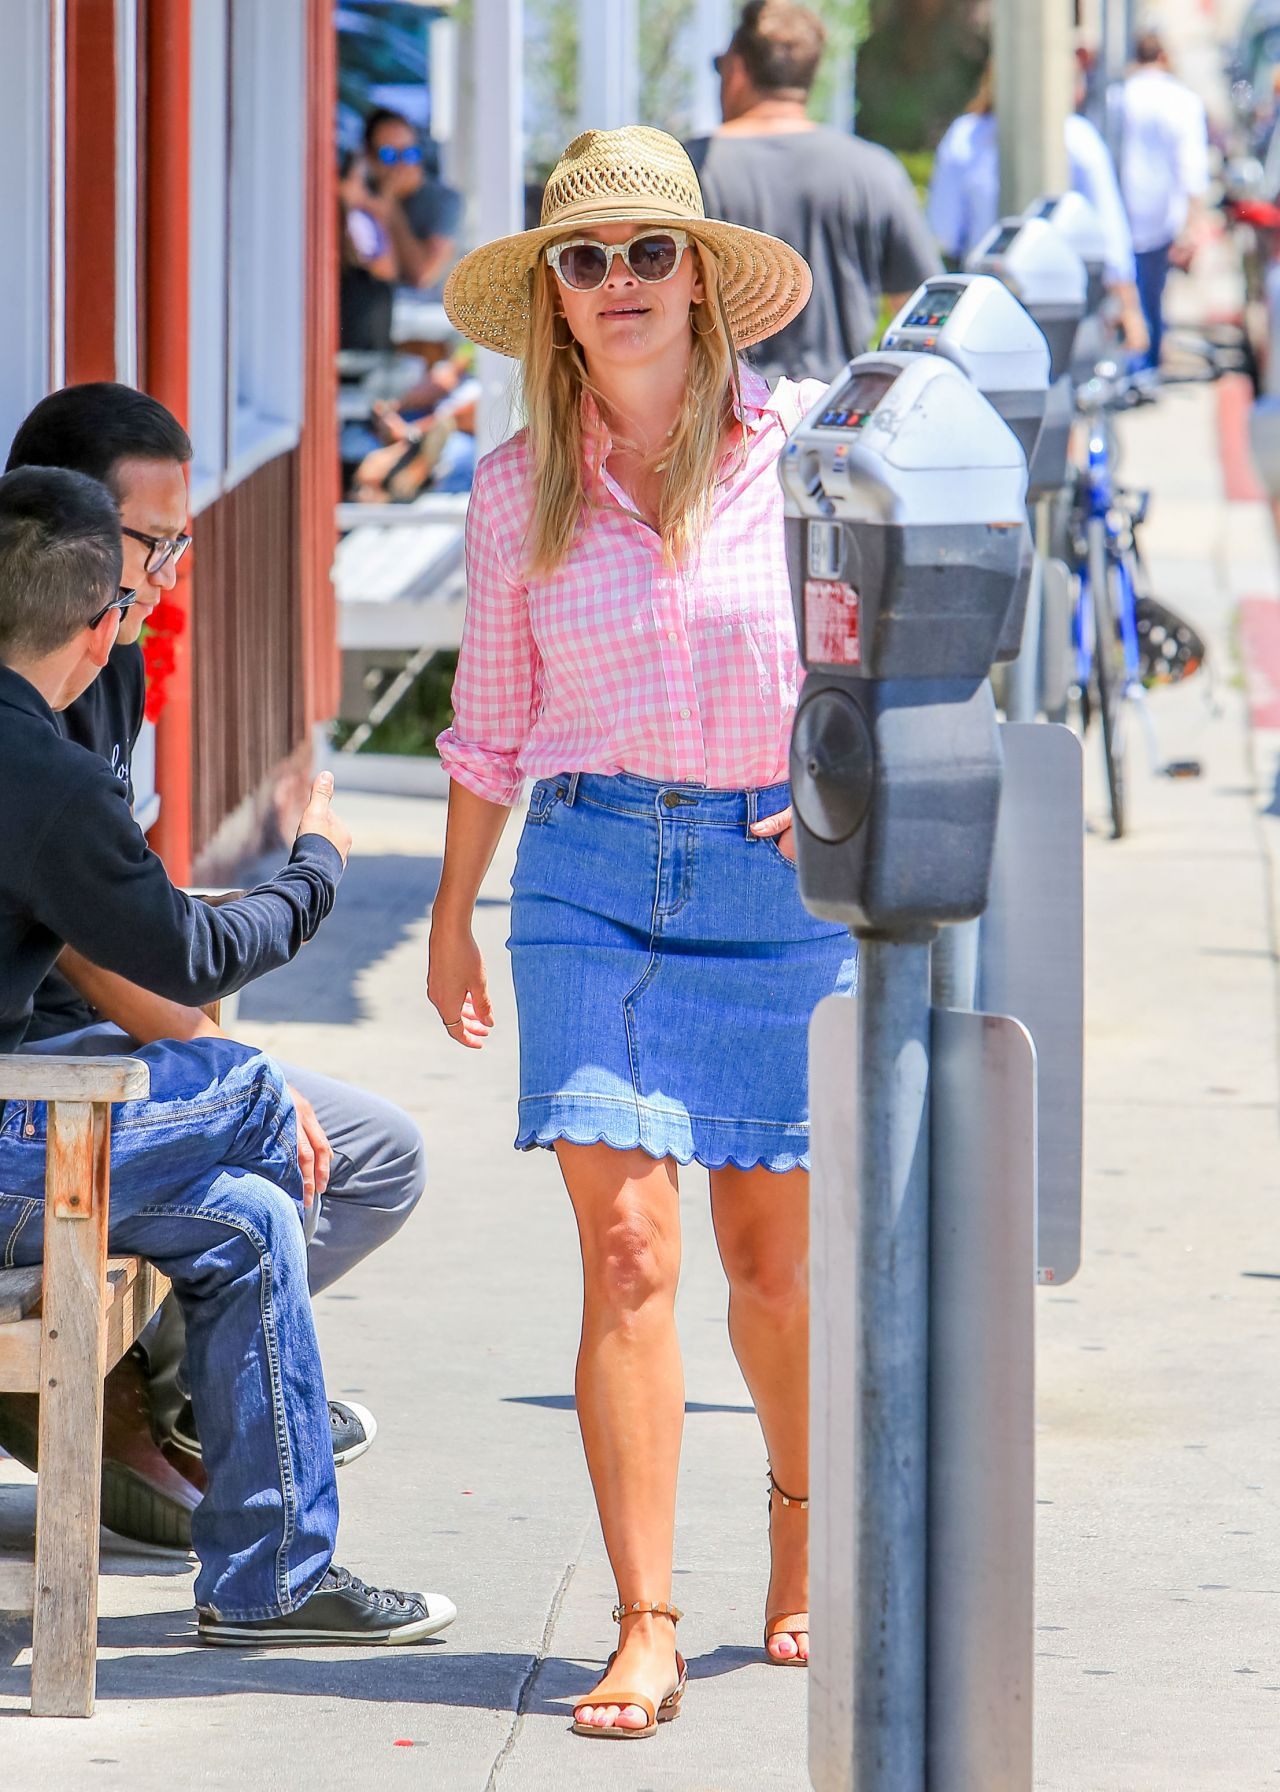 Reese Witherspoon Summer Street Style Los Angeles 07 19 2018